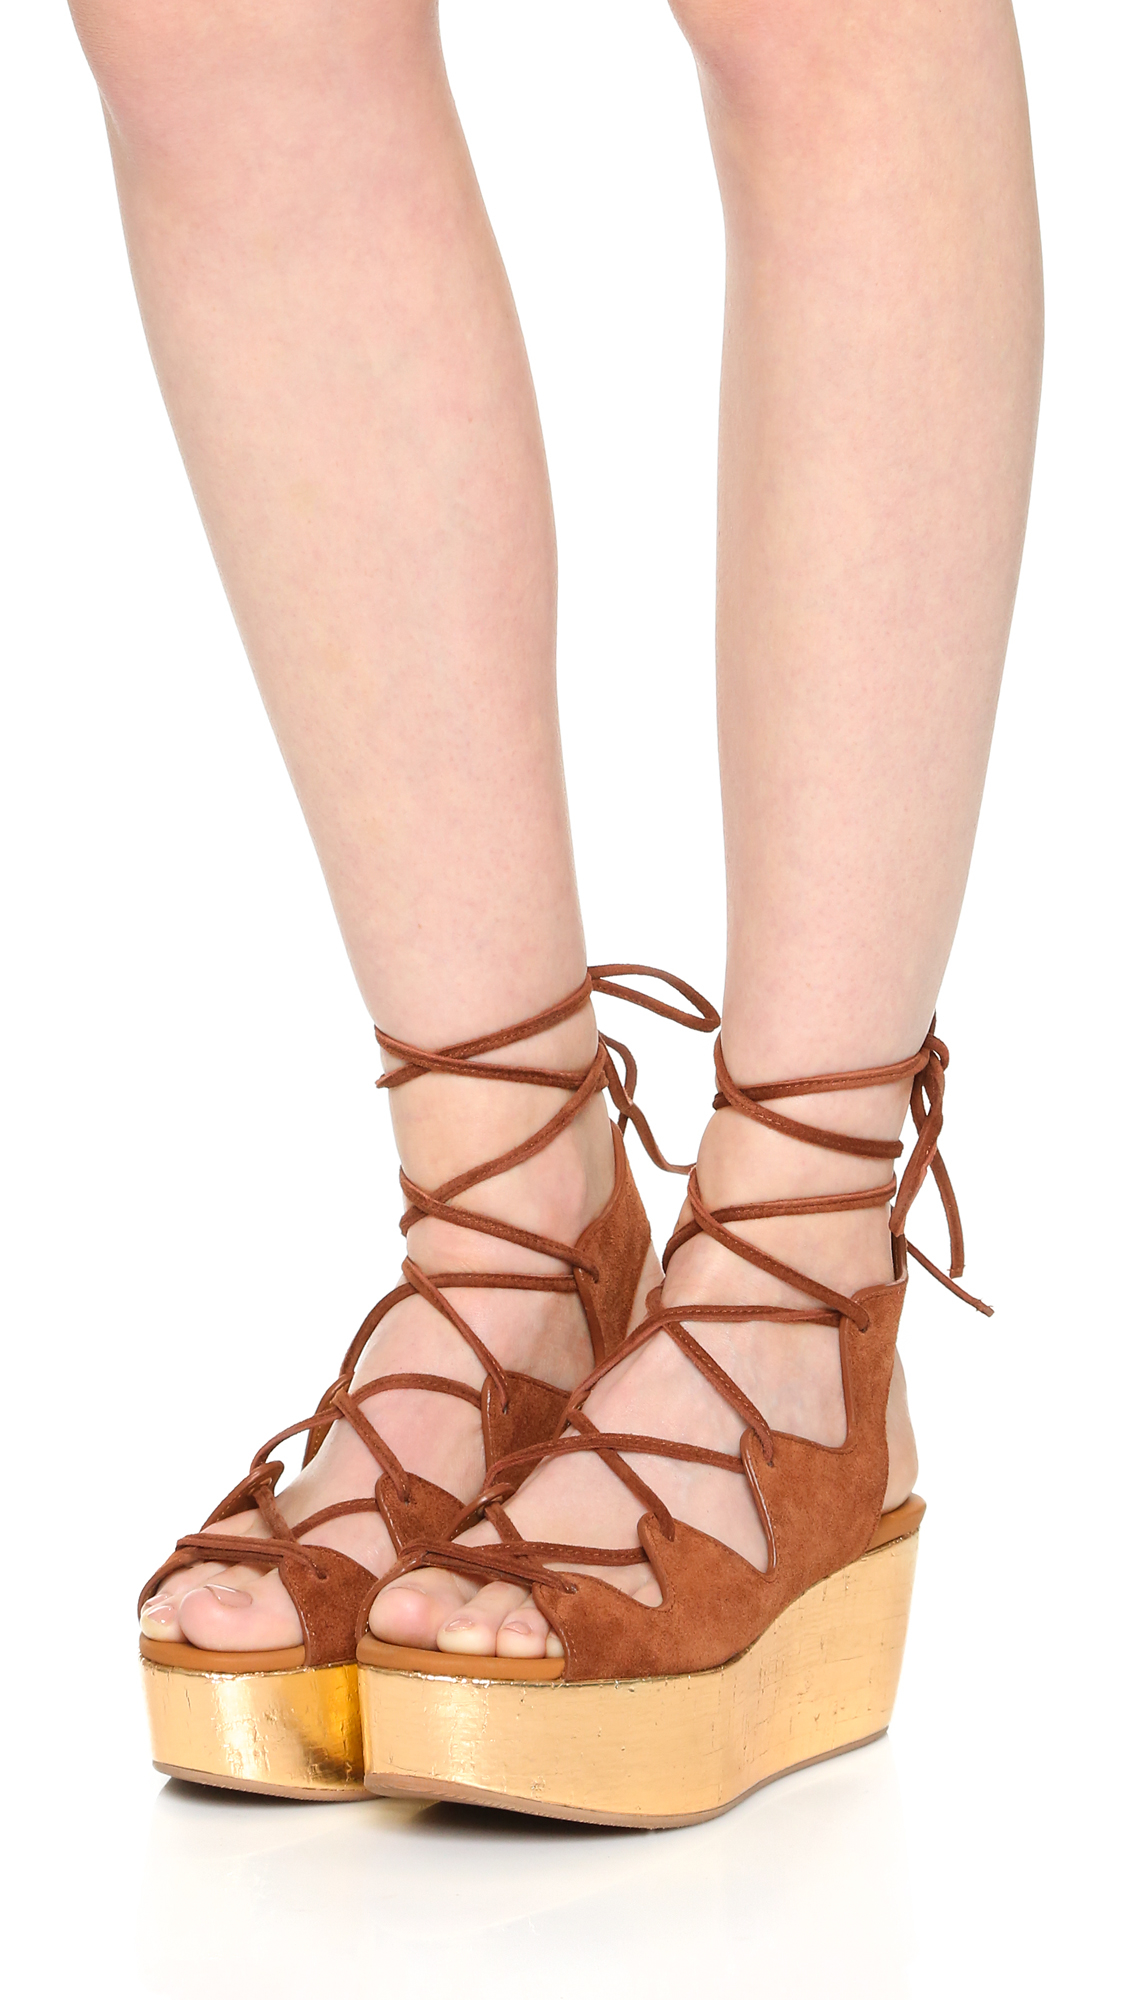 93e6ef903e1 Lyst - See By Chloé Liana Platform Lace Up Sandals in Brown